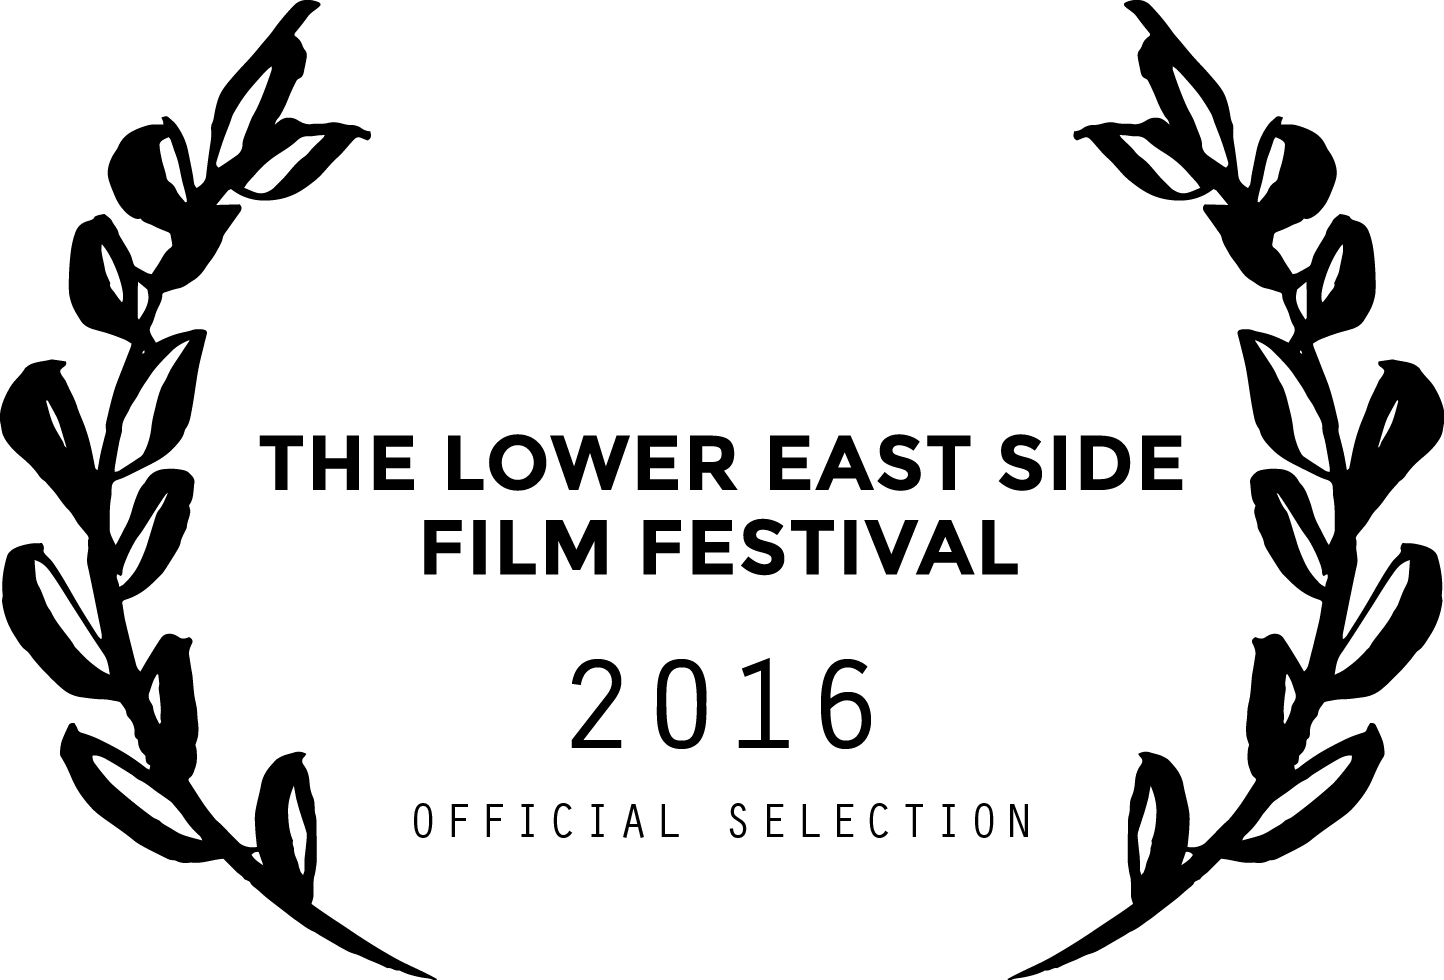 LESFF_2016_OFFICIAL_SELECTION_BLACK.png